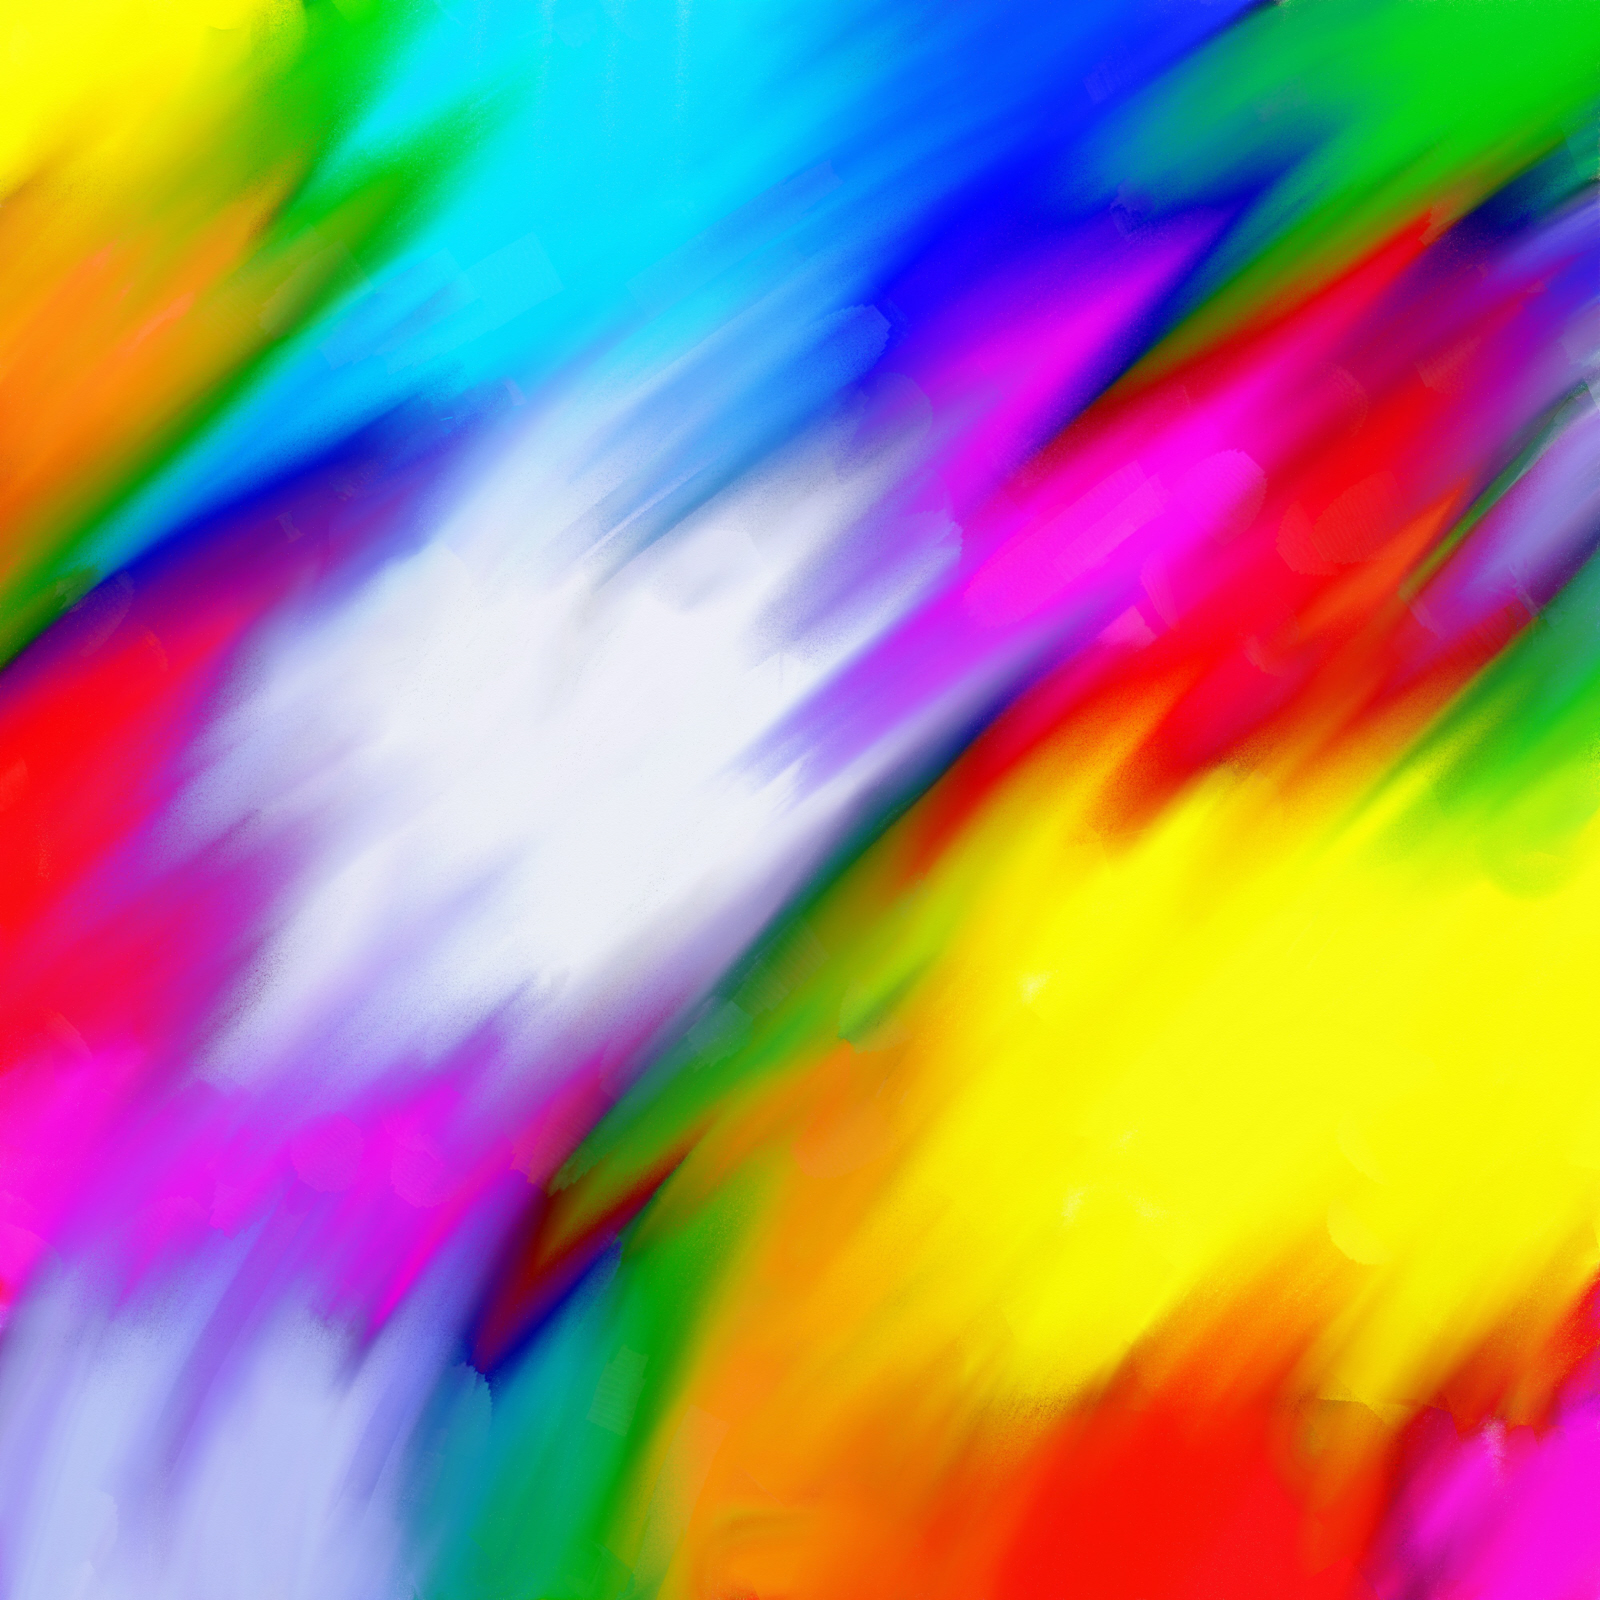 Abstract Colour Blend, Abstract, Art, Blend, Chalk, HQ Photo